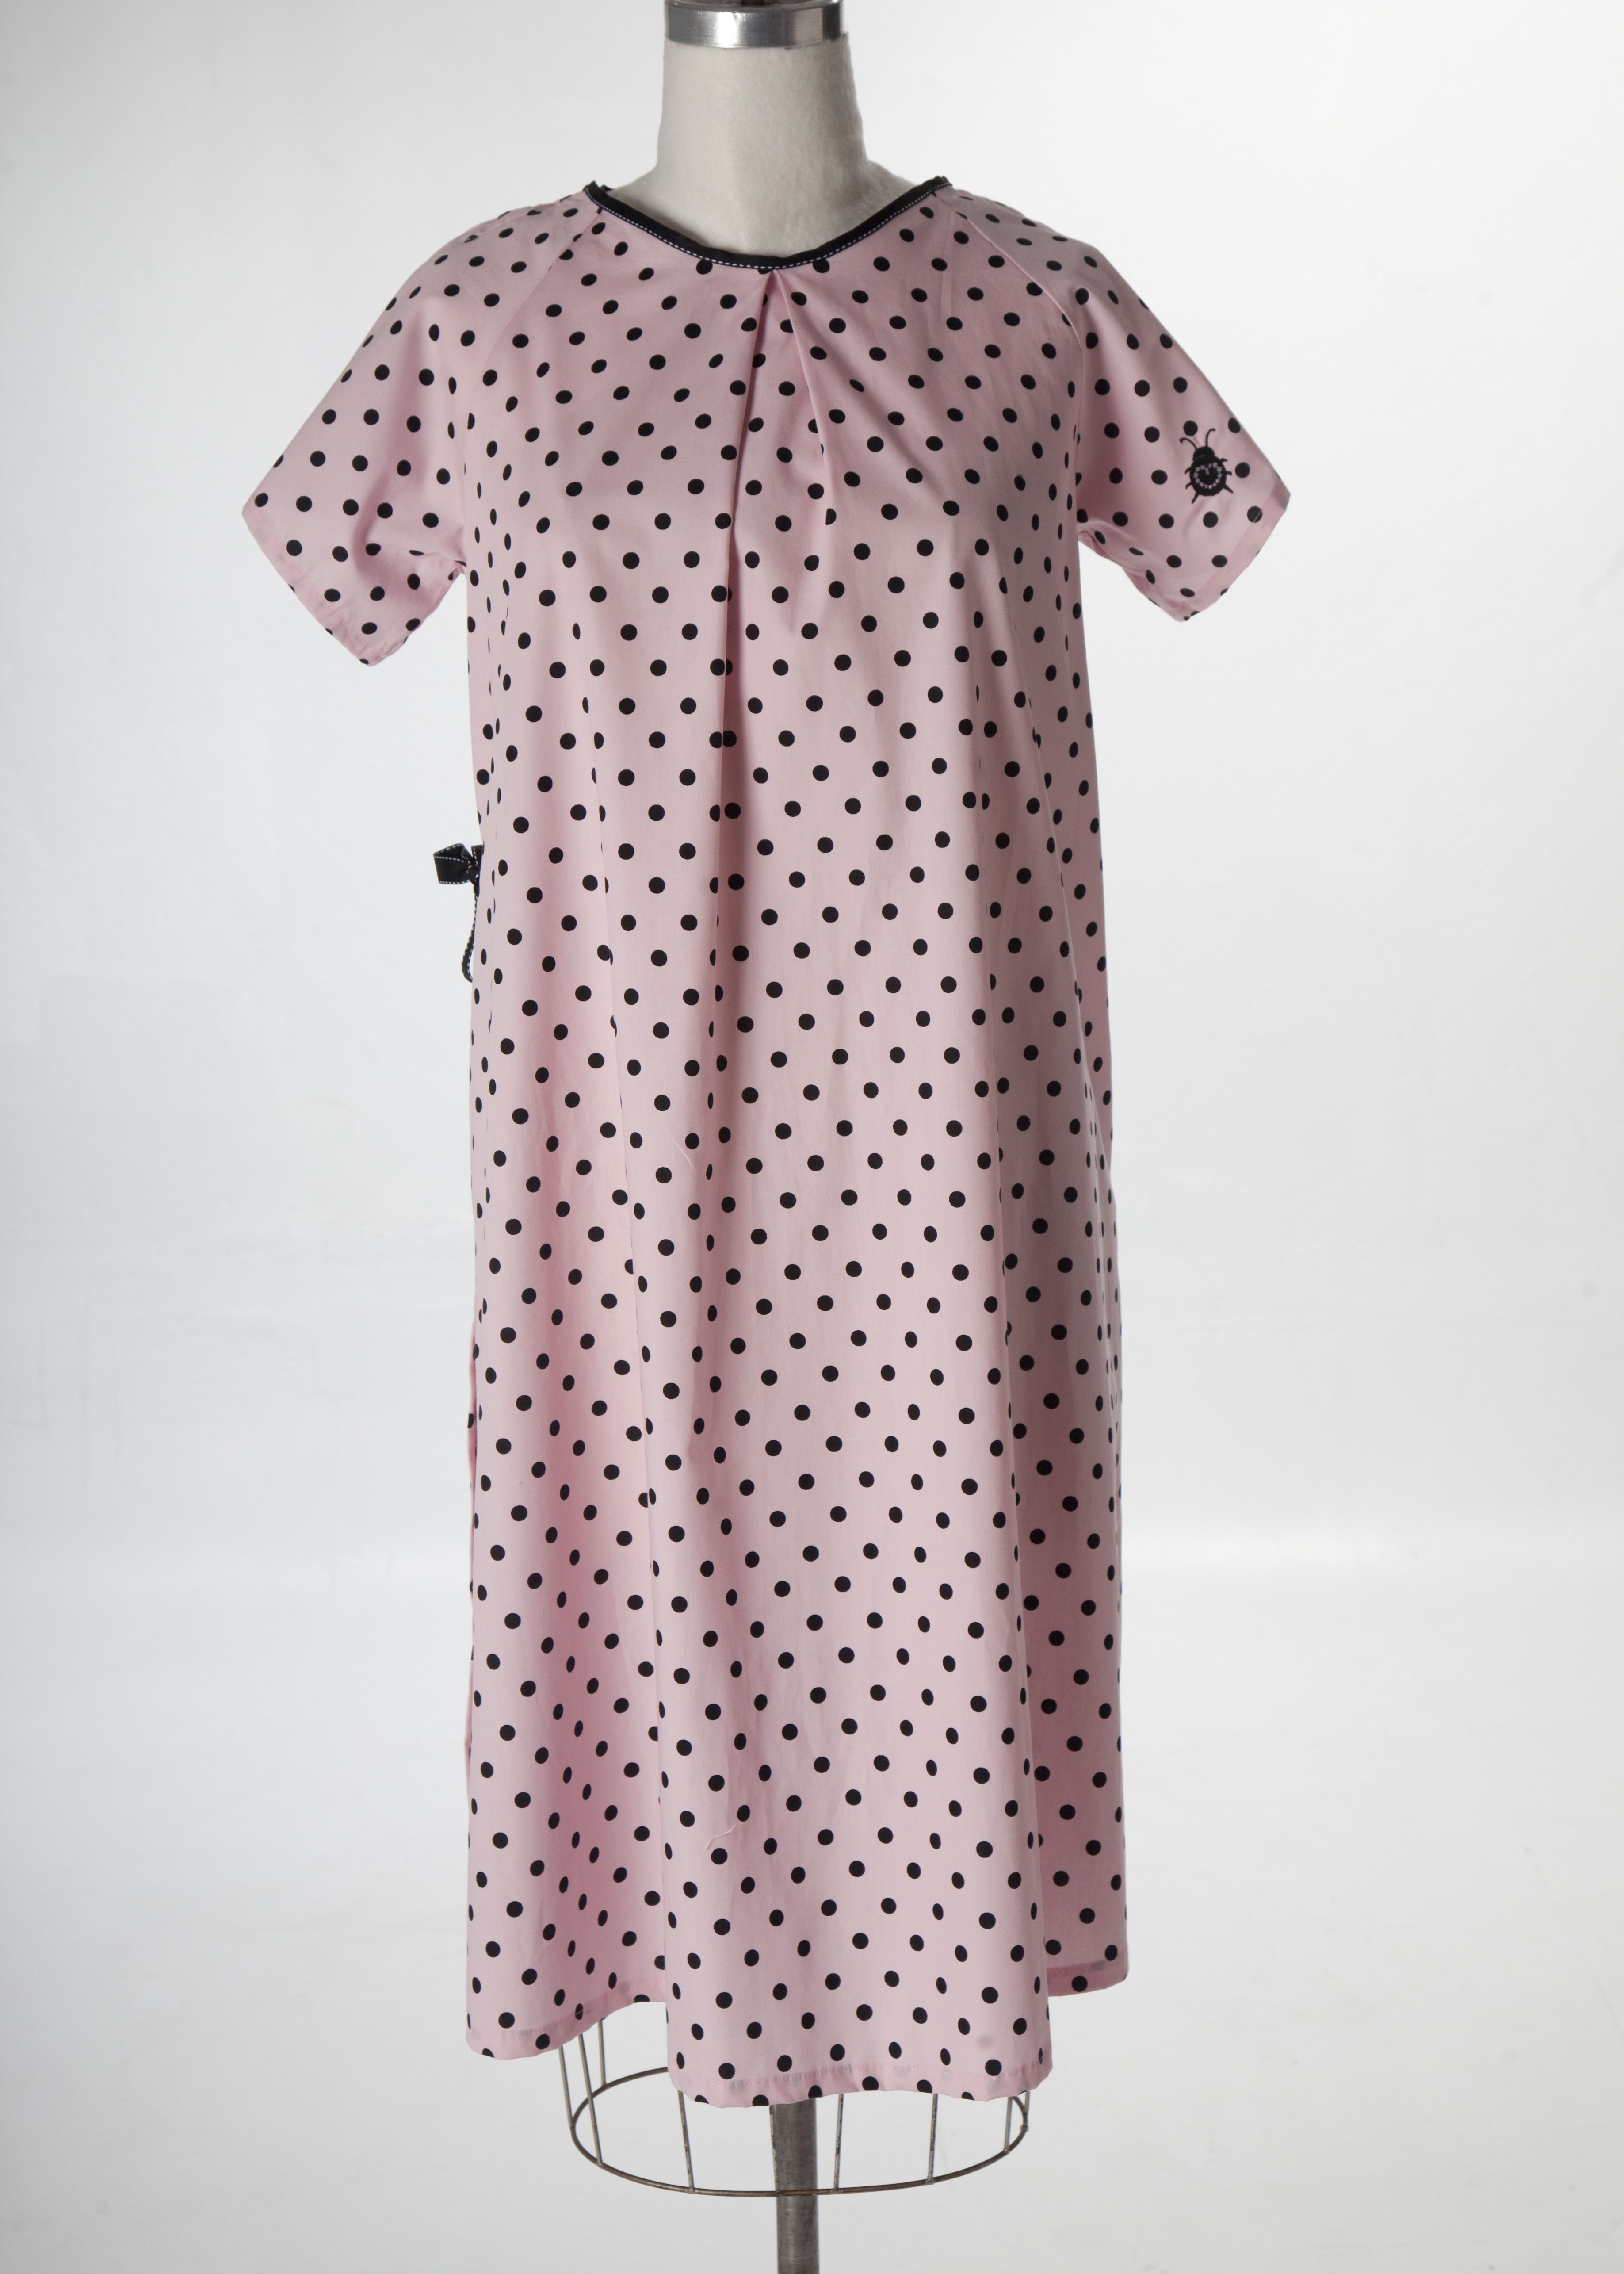 hospital gown   Not-Your-Average Hospital Gown   Pinterest